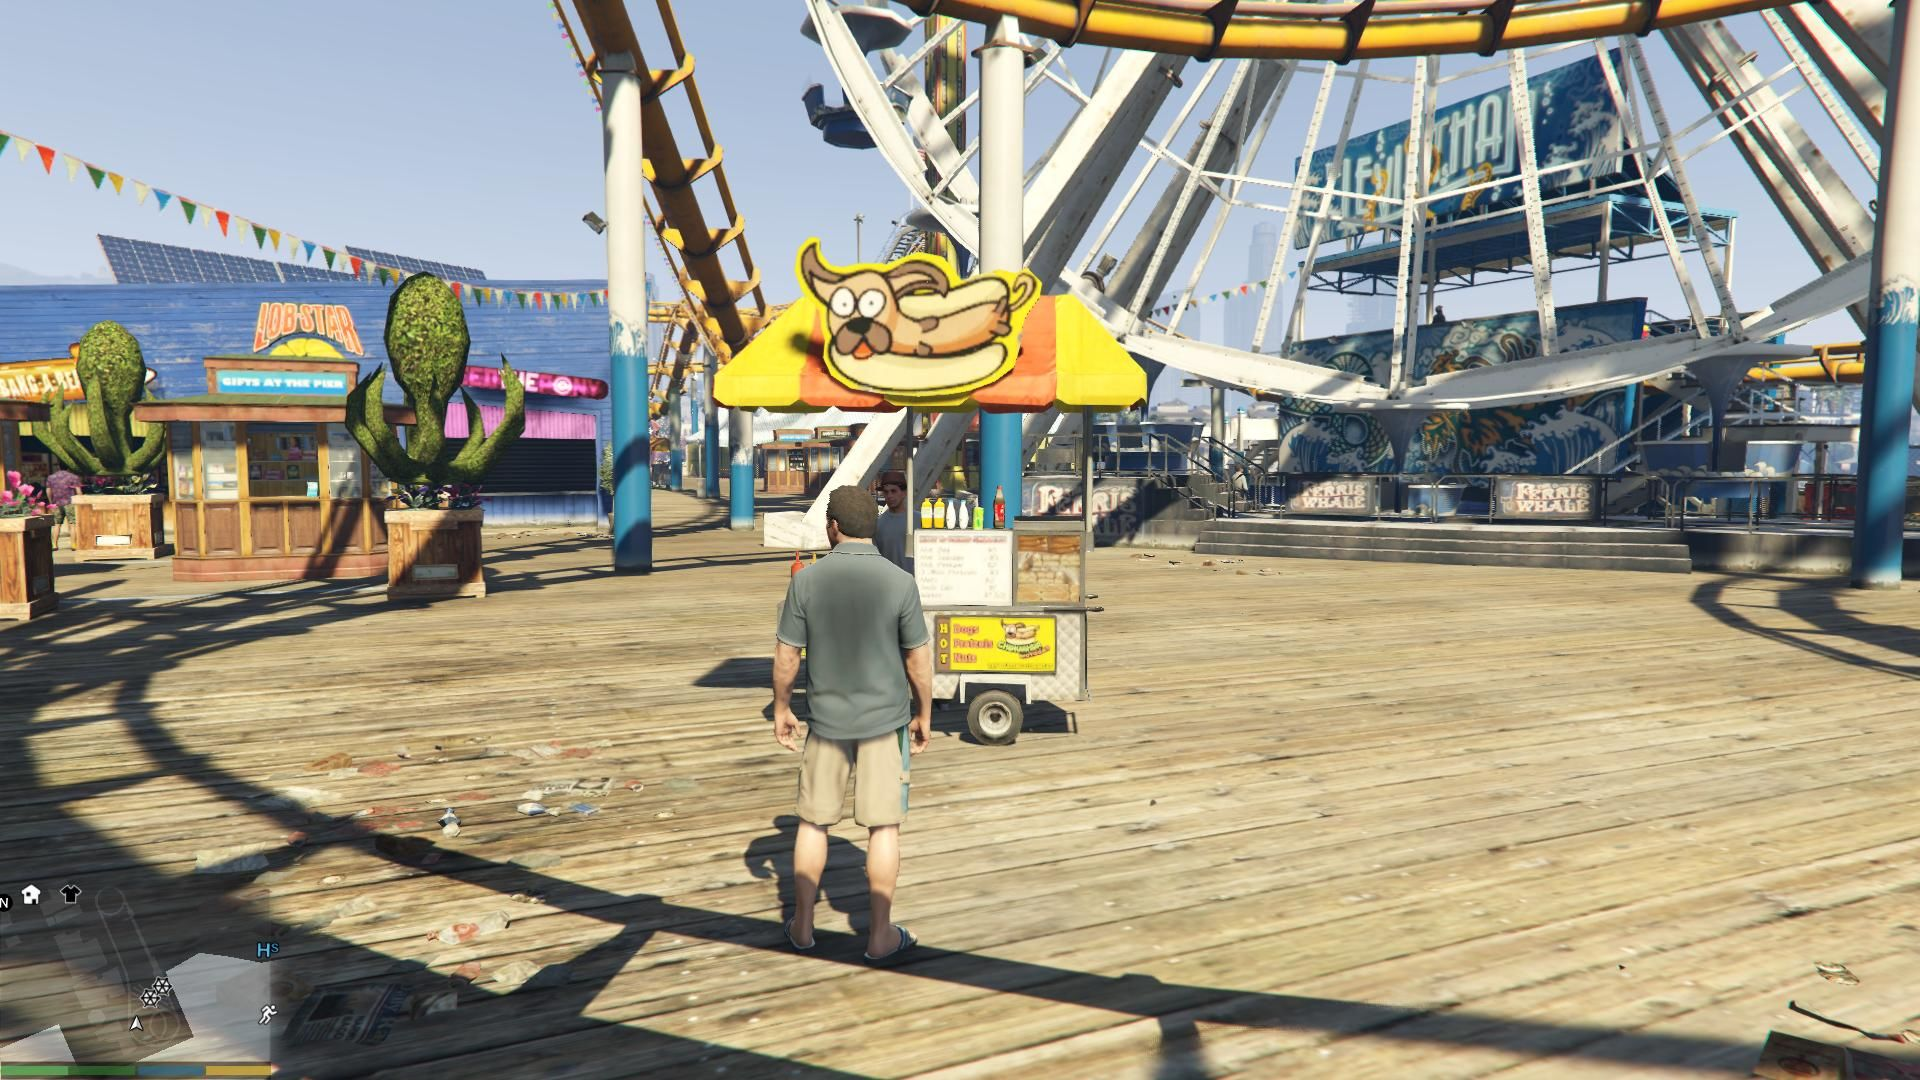 Grand Theft Auto V Windows To bad that I can't buy any hot dogs here